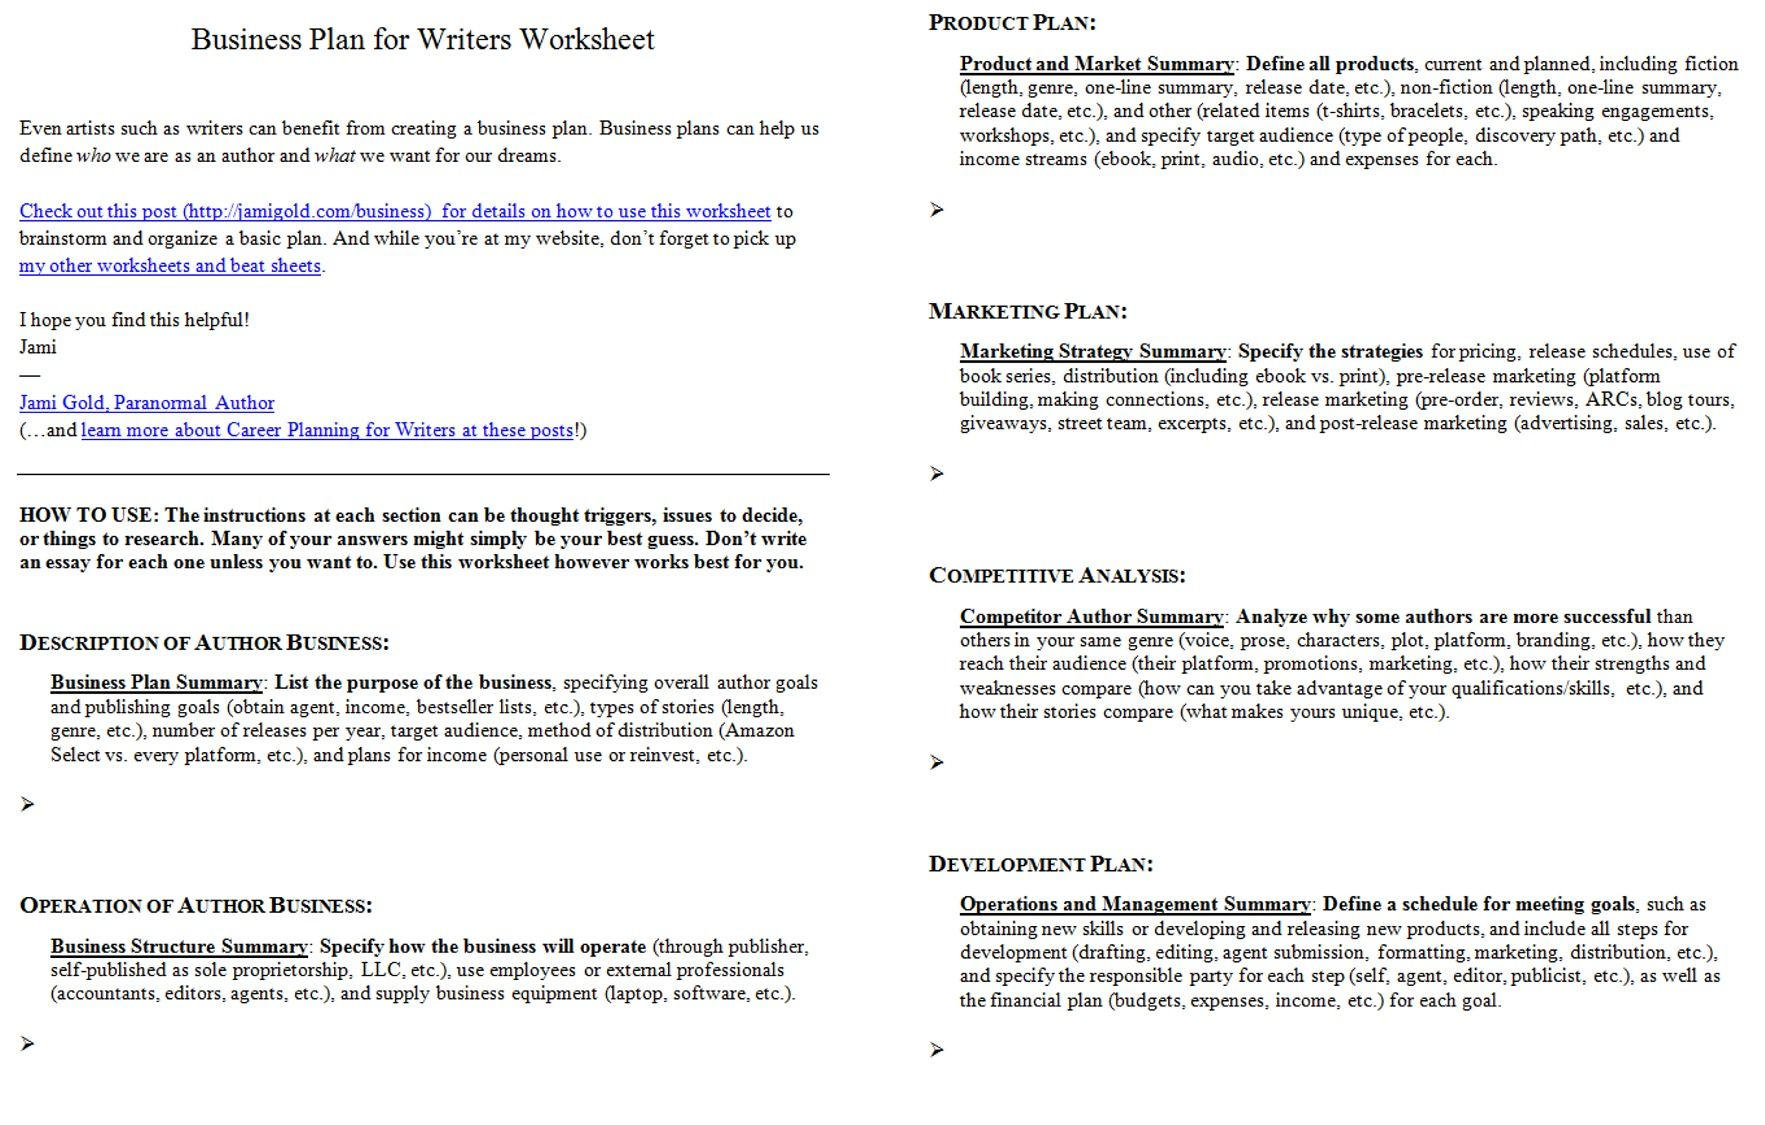 worksheet Creating A Character Worksheet worksheets for writers business planning and homework screen shot of both pages the plan worksheet